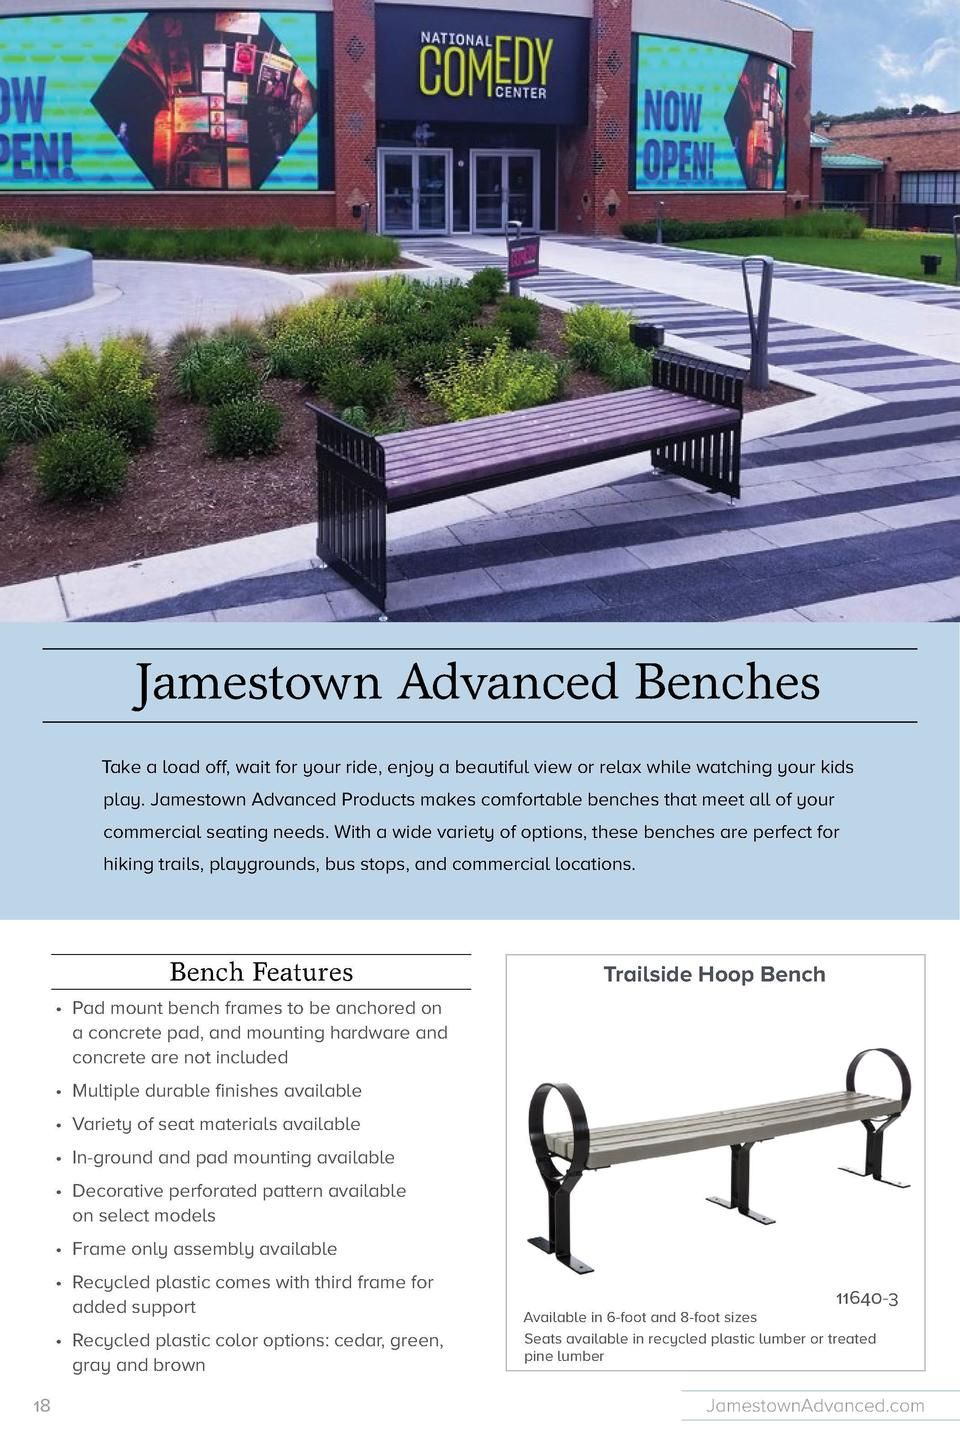 Trailside Bench  Expandable Backless Bench  11638-3 Available in 6-foot and 8-foot sizes 3-inch by 4-inch slats cut to len...